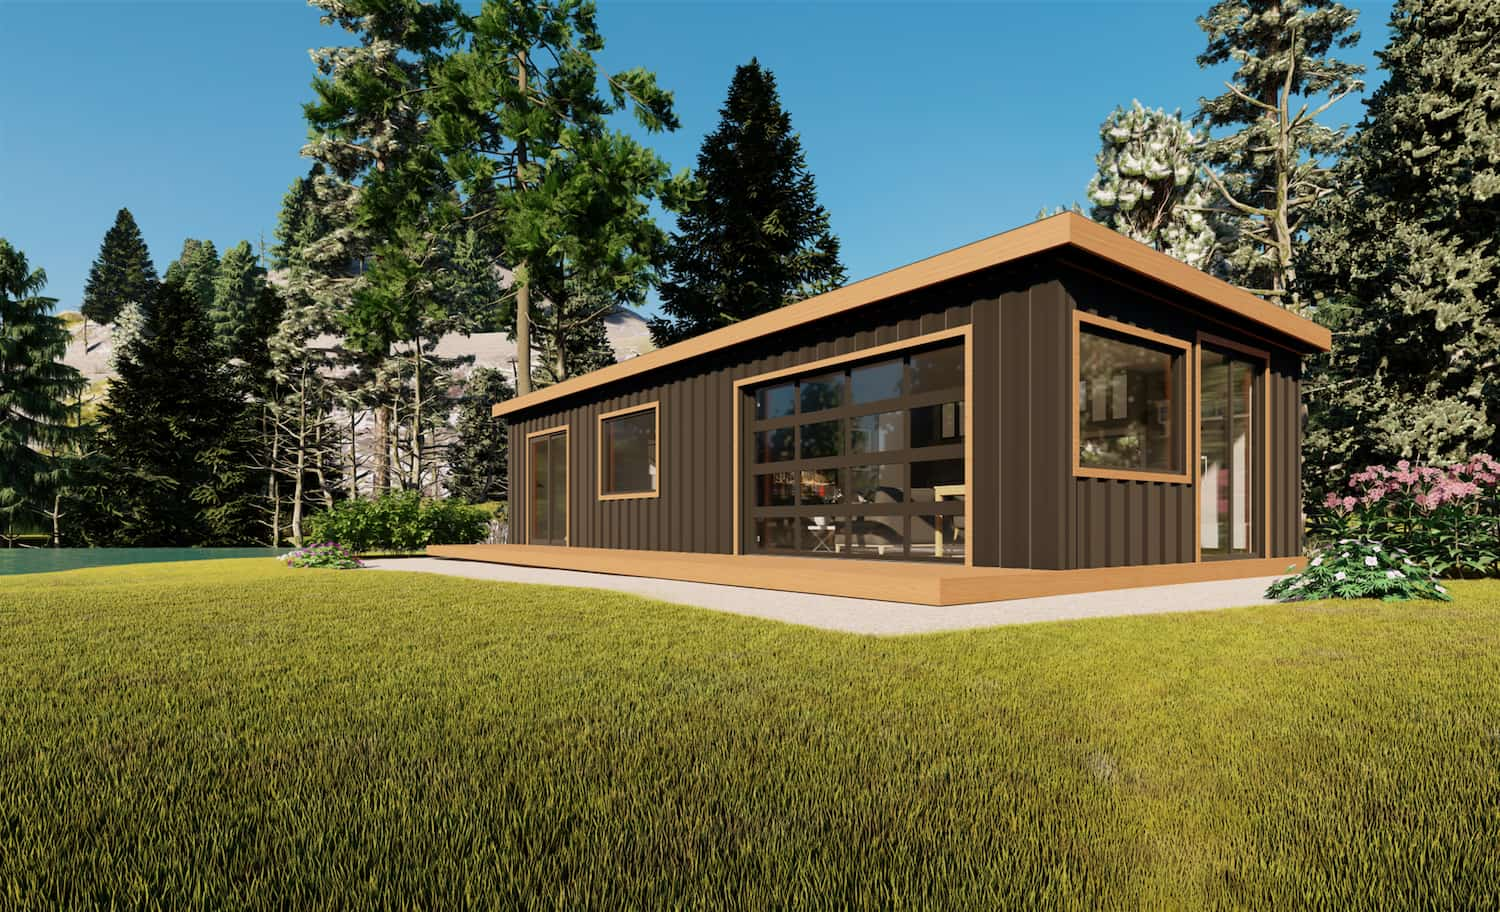 Prebuilt modular cabins and cottages for sale